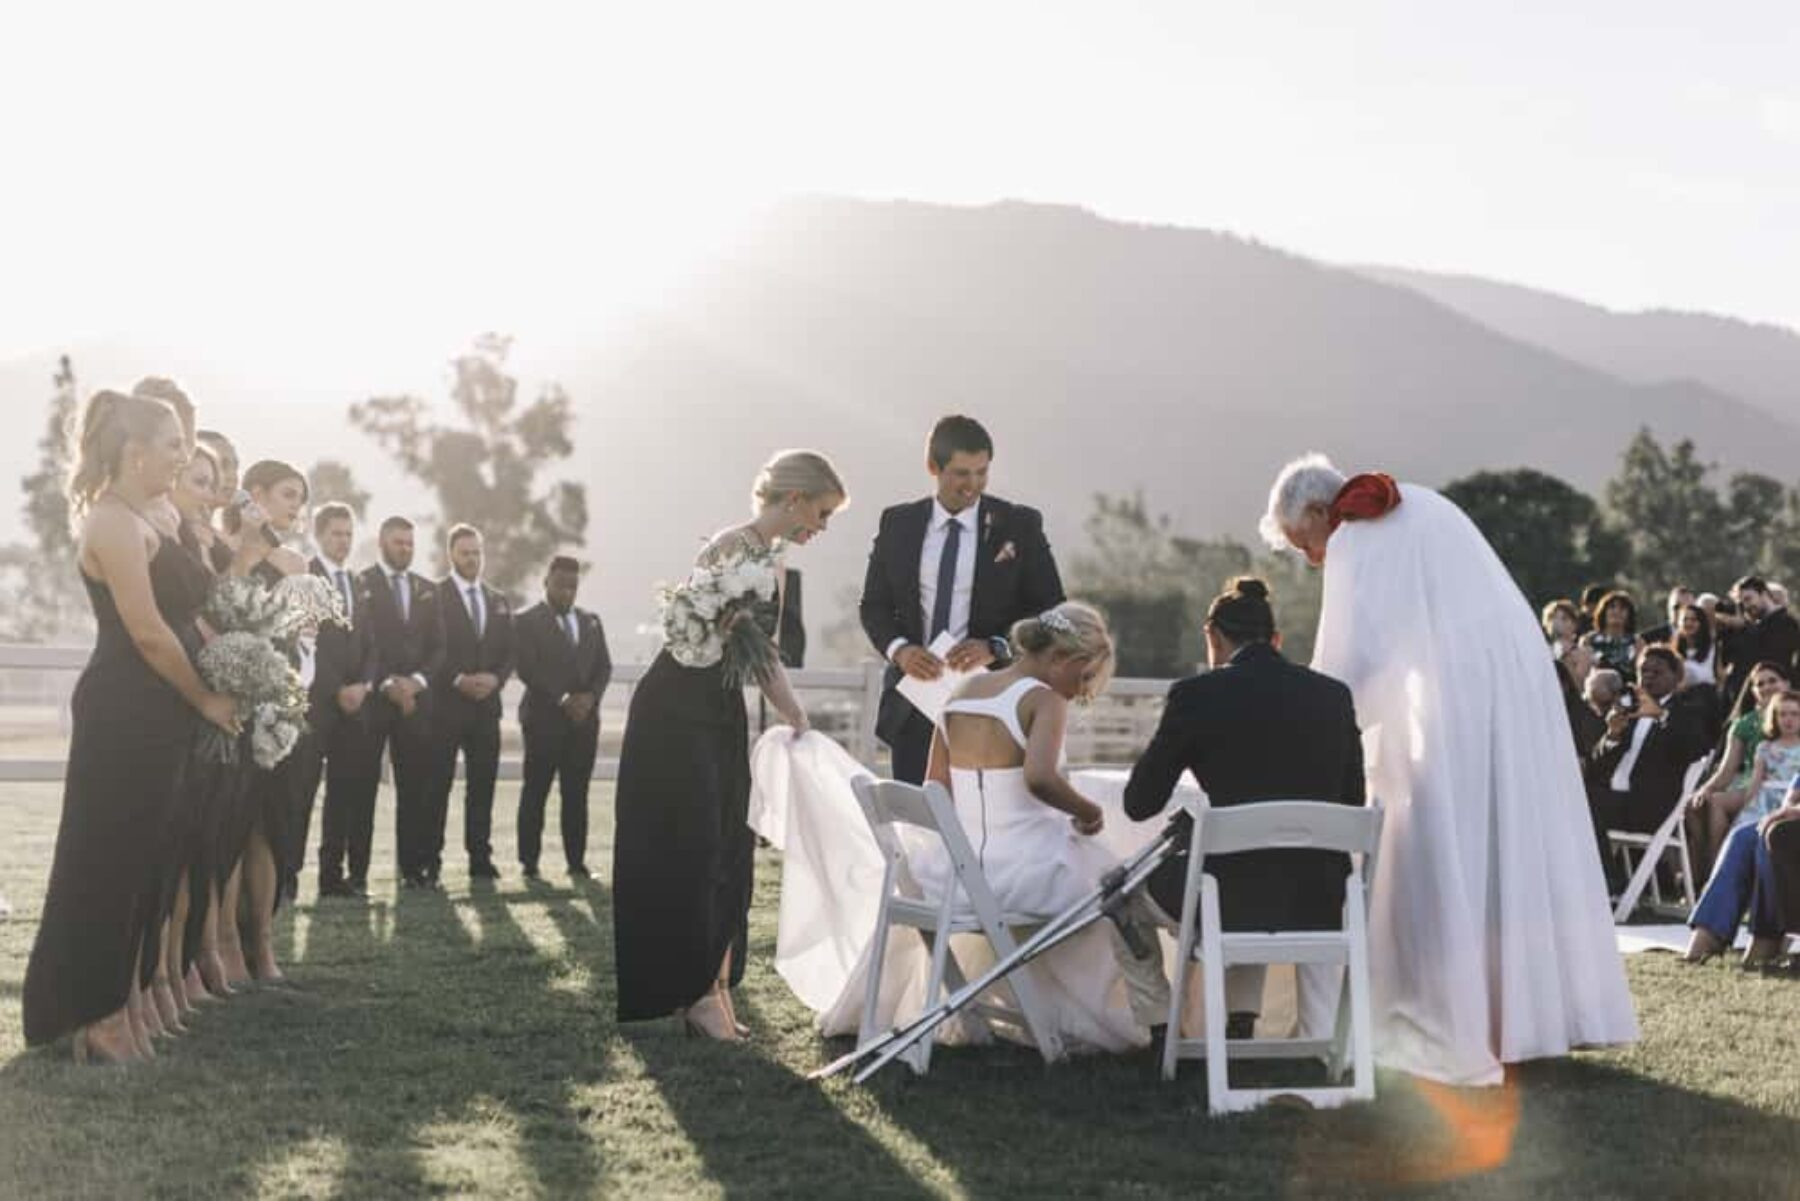 Magical farm wedding, Townsville QLD / Photography by Aleksandar Jason